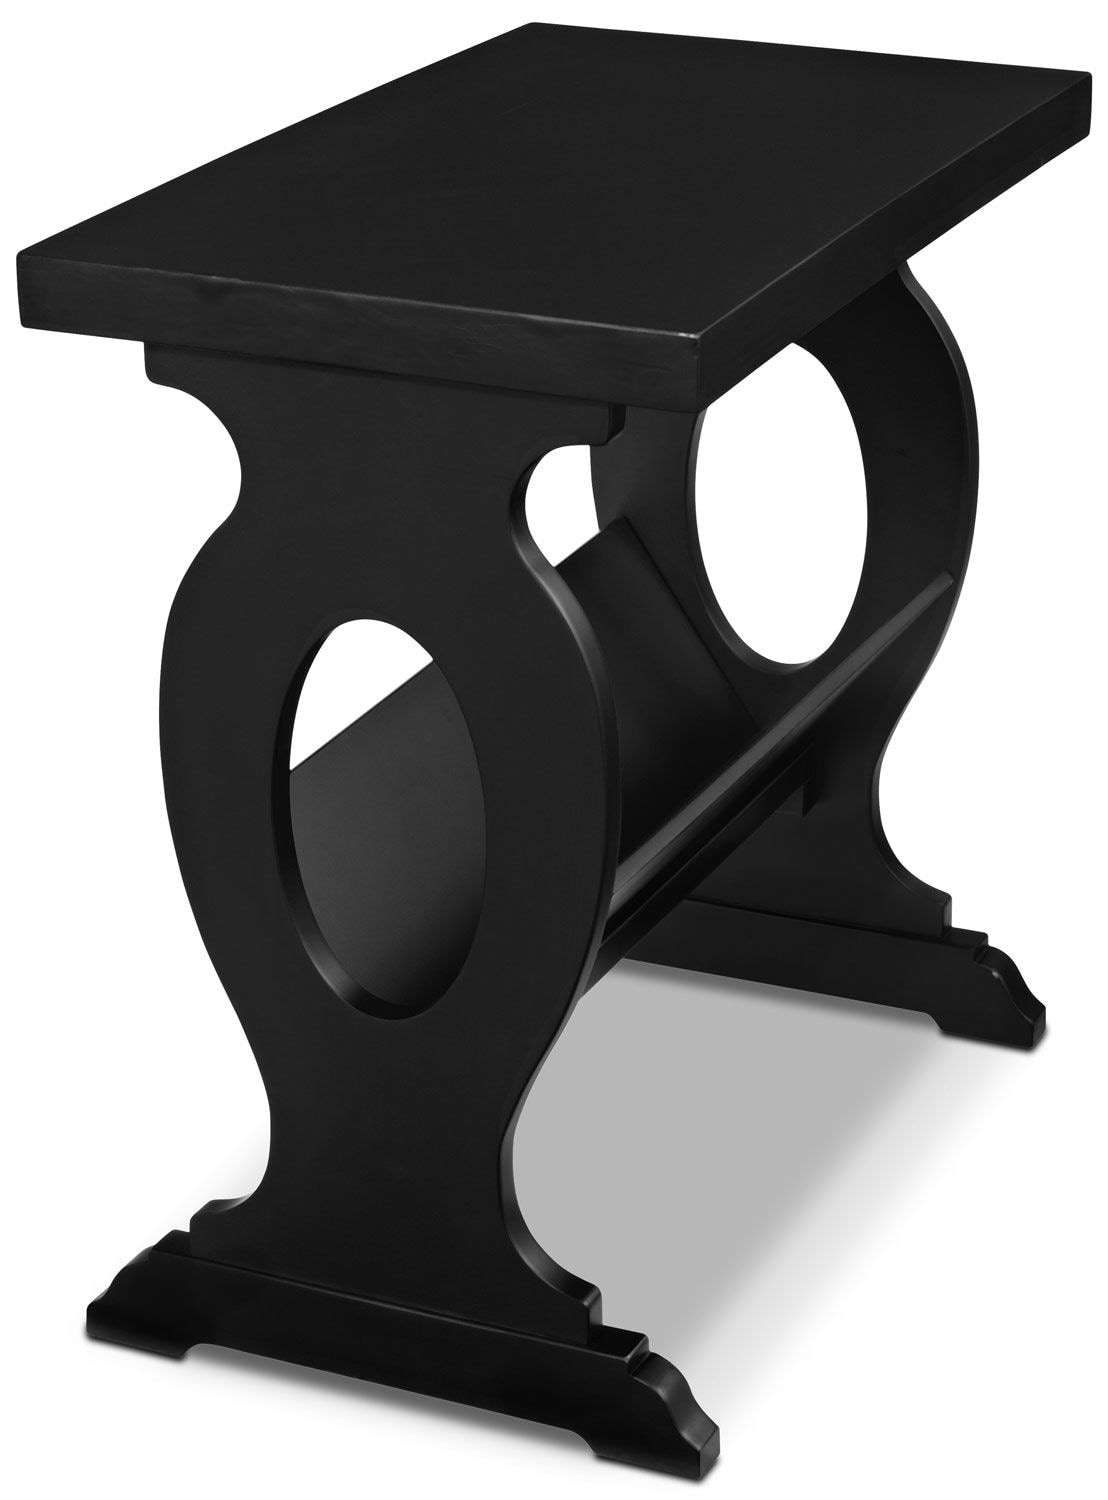 Gander Accent Table with Magazine Rack - Black